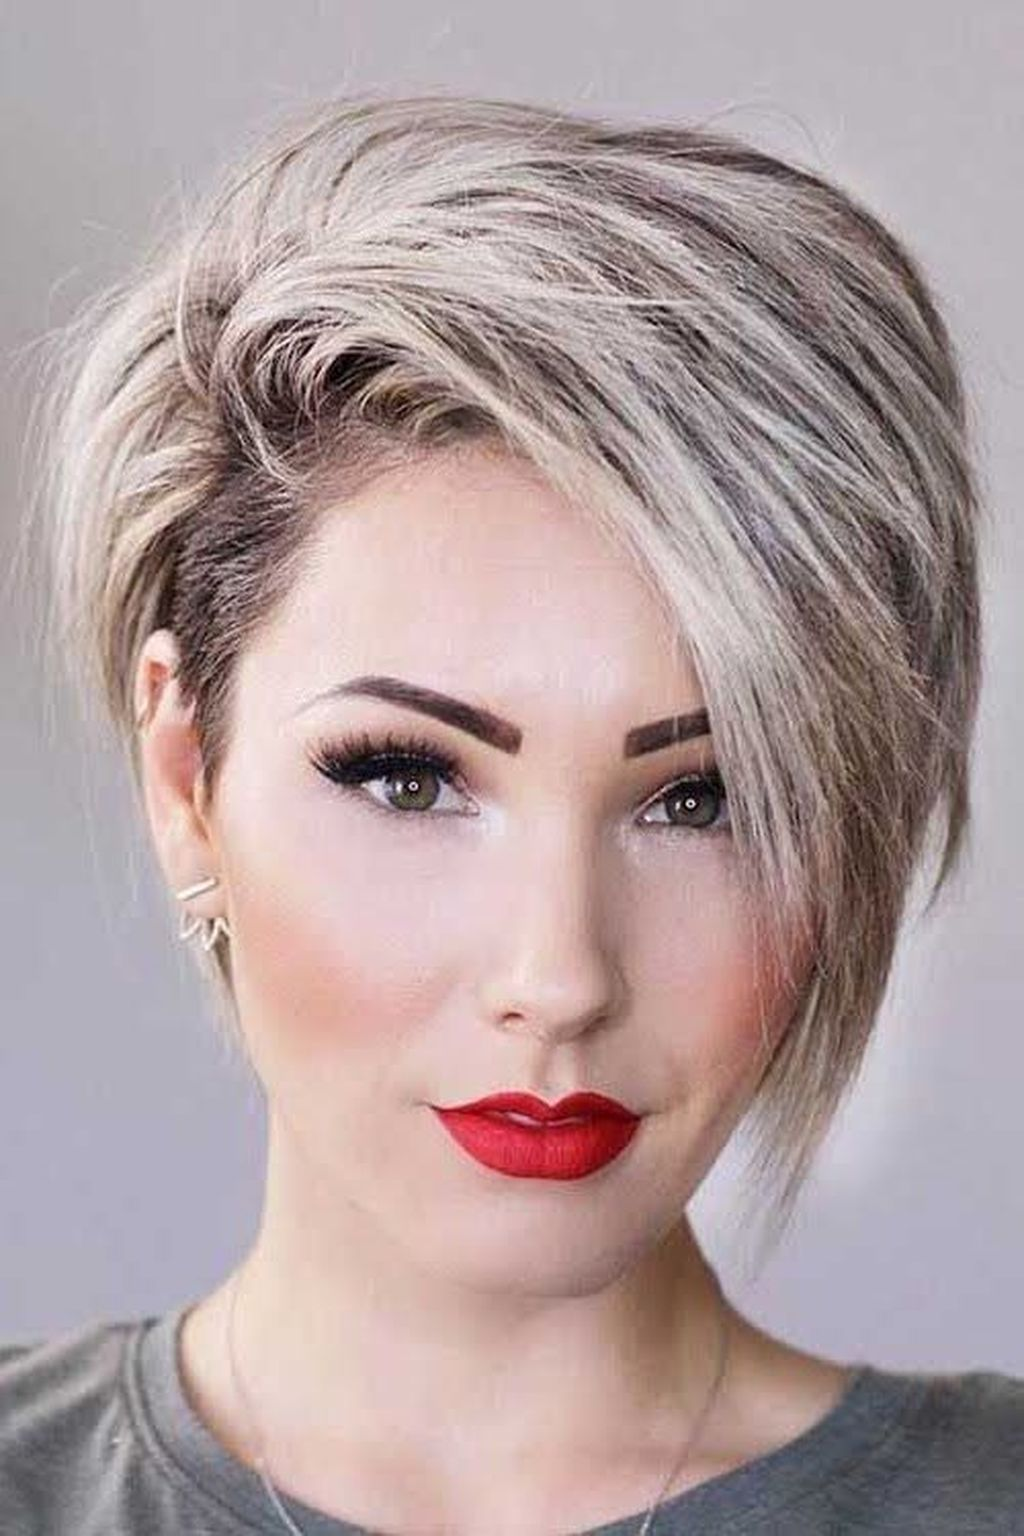 30 The Best Women Short Pixie Haircut Ideas | Stile di ...